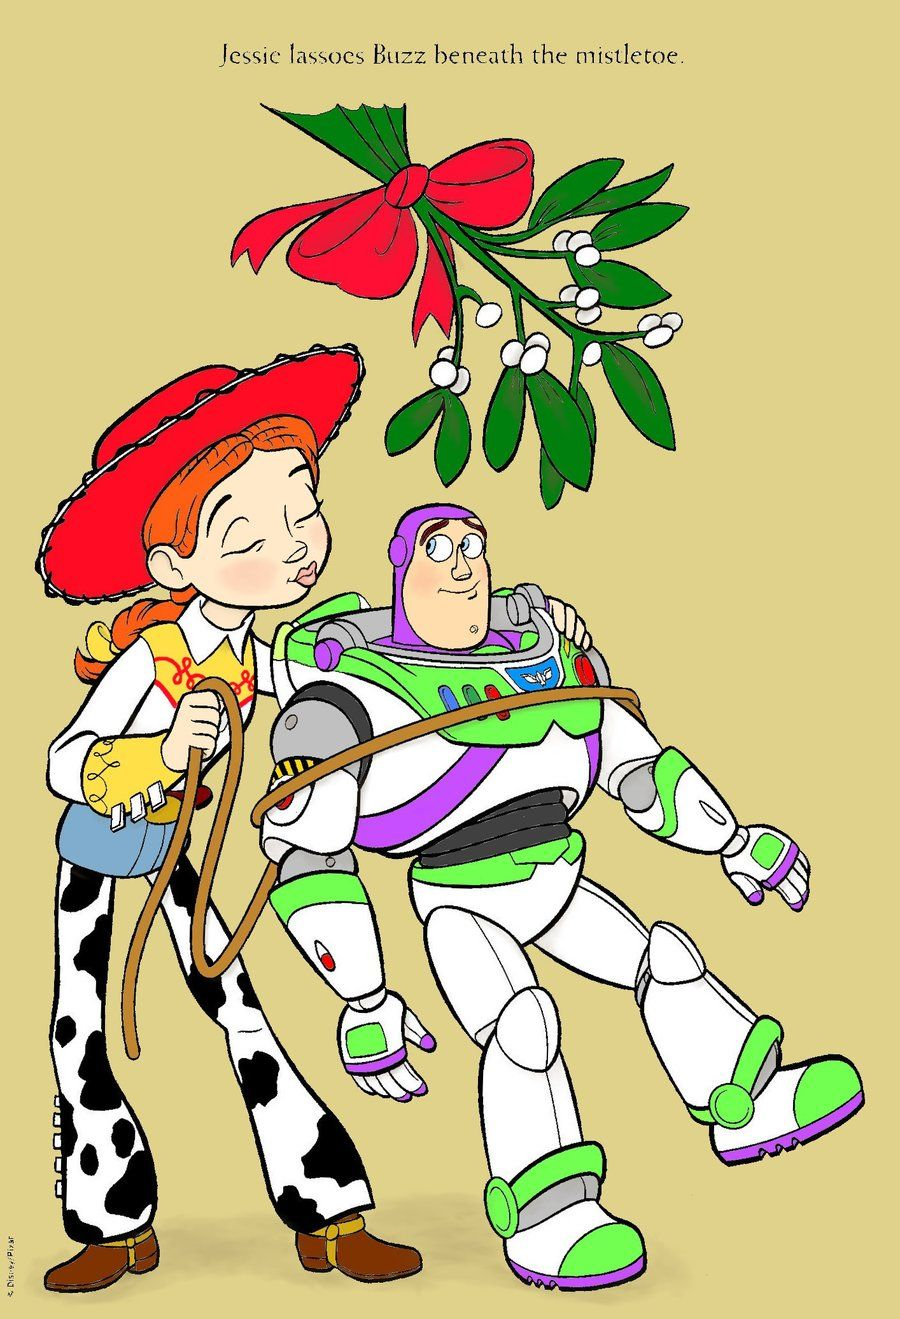 Buzz Lightyear and Jessie under the mistletoe from Toy Story  0e4bd0ccd30